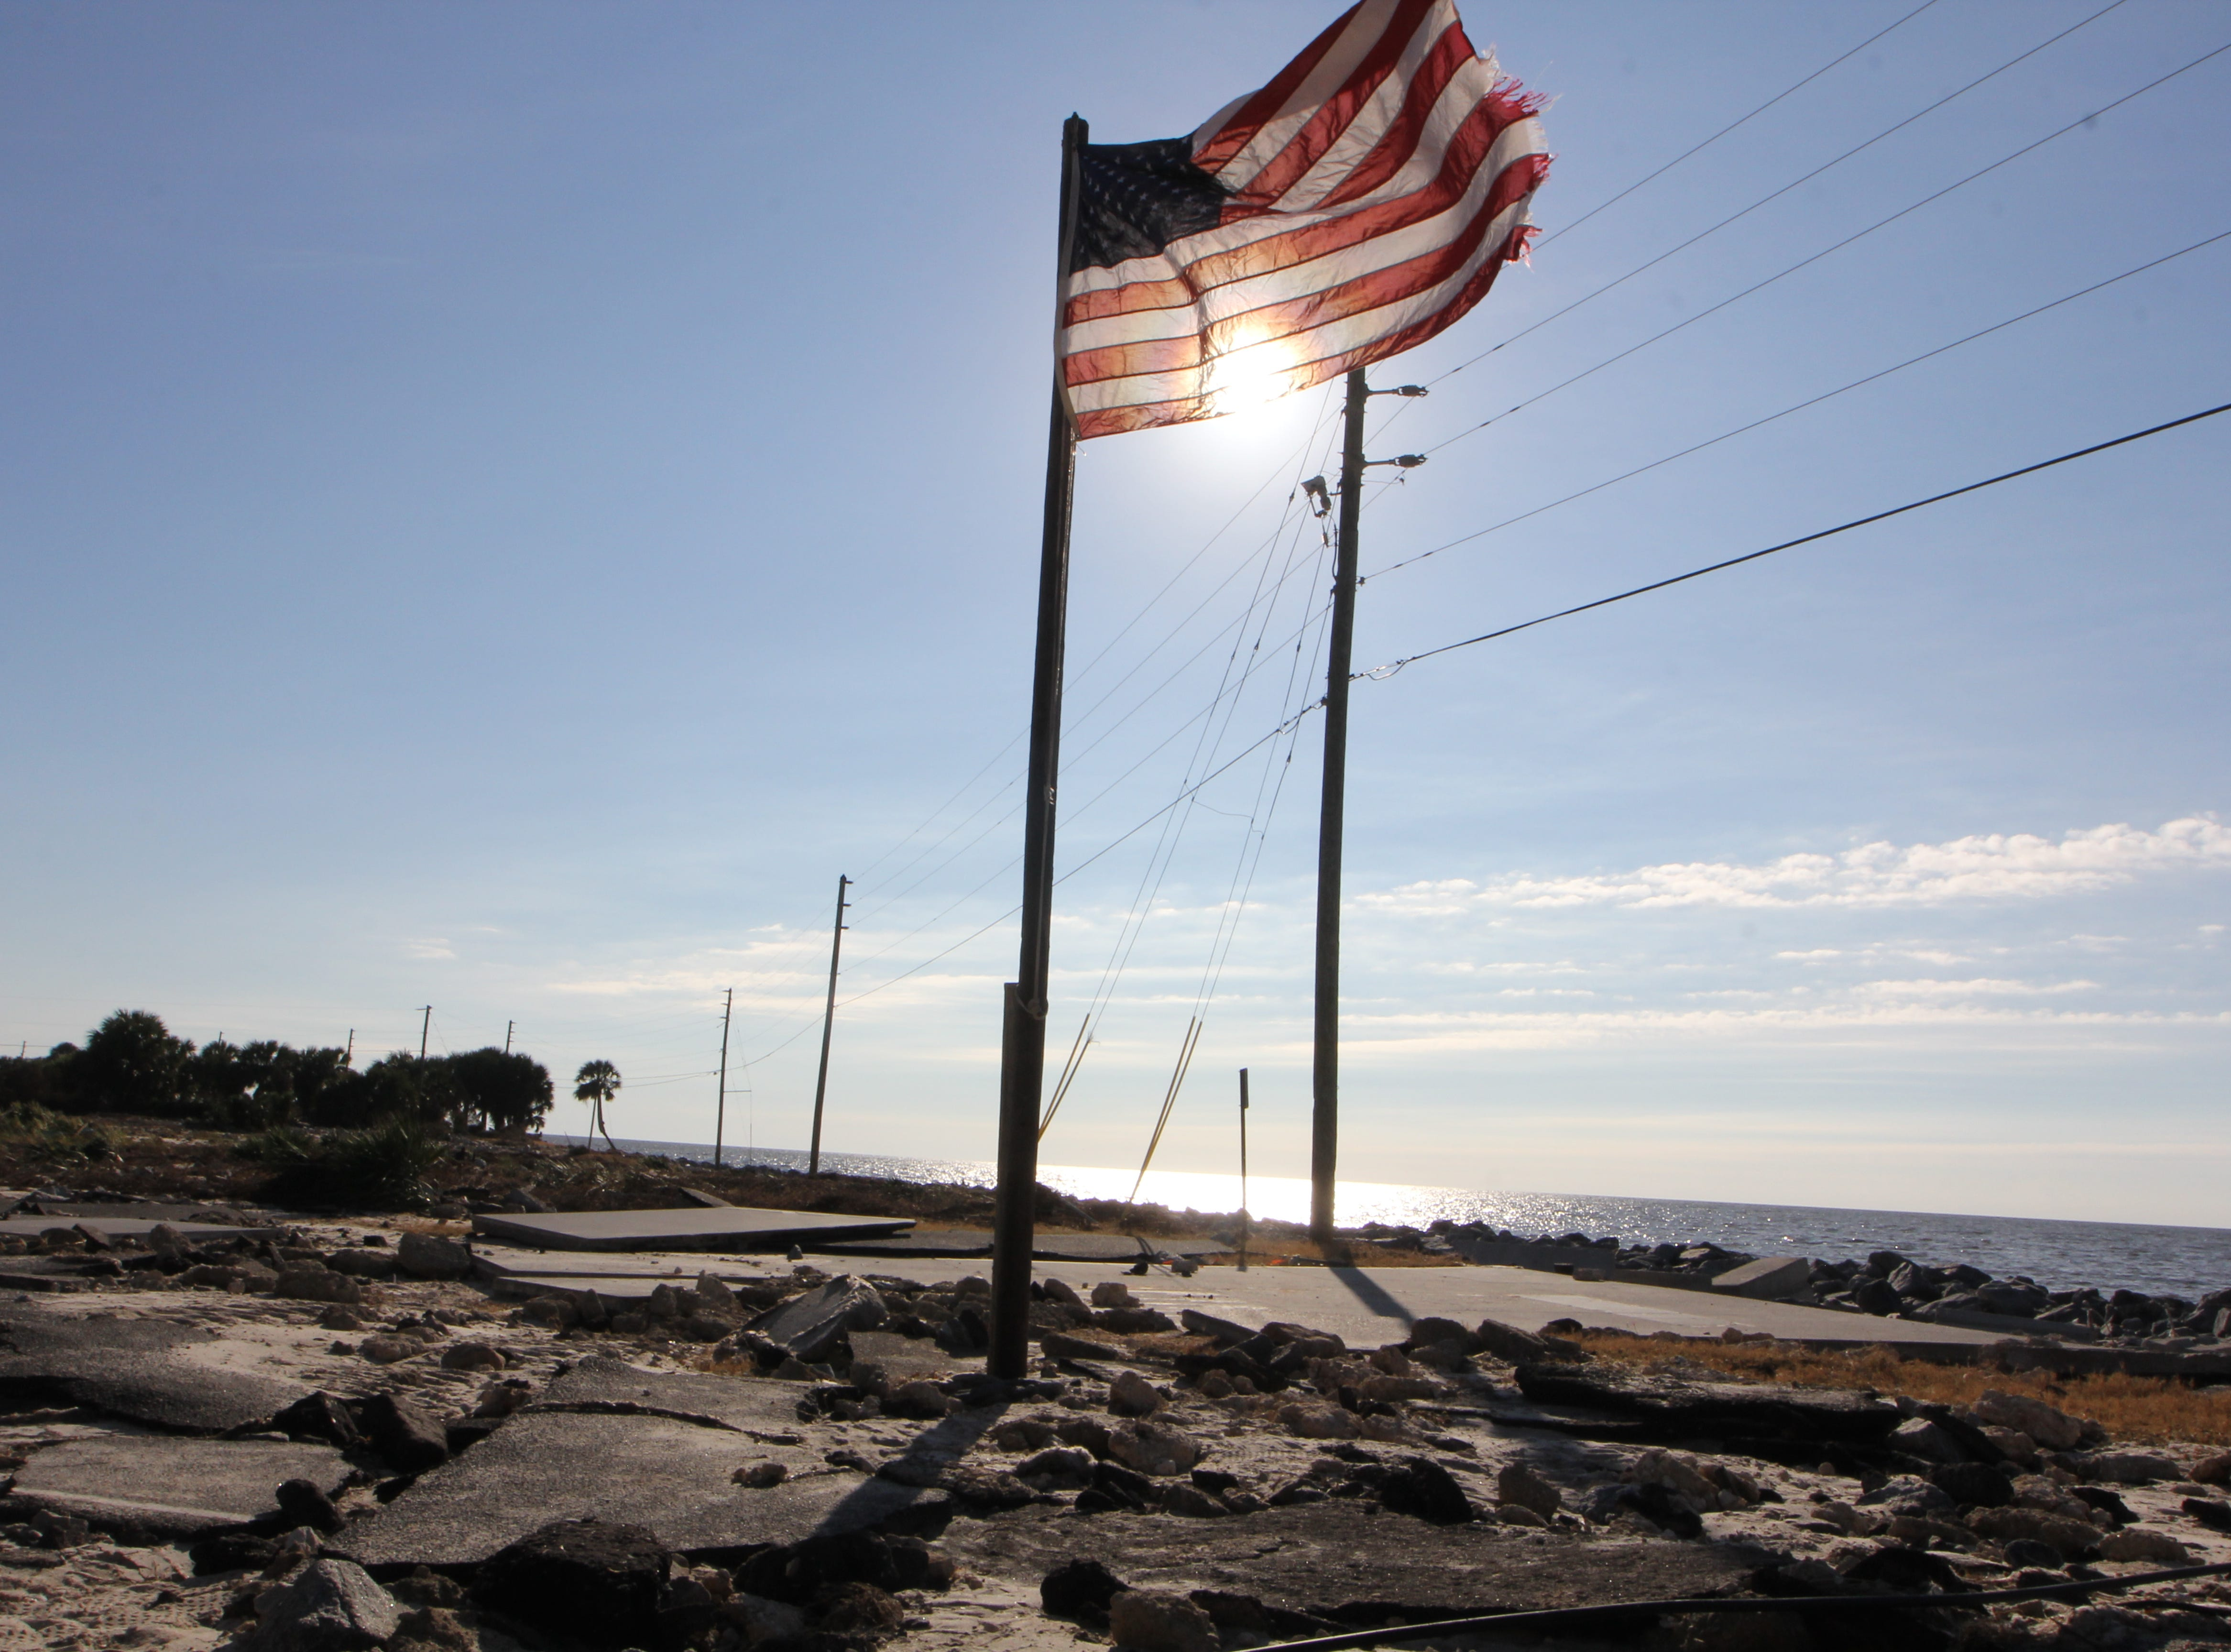 An American flag flaps in the wind amid rubble on Alligator Point.